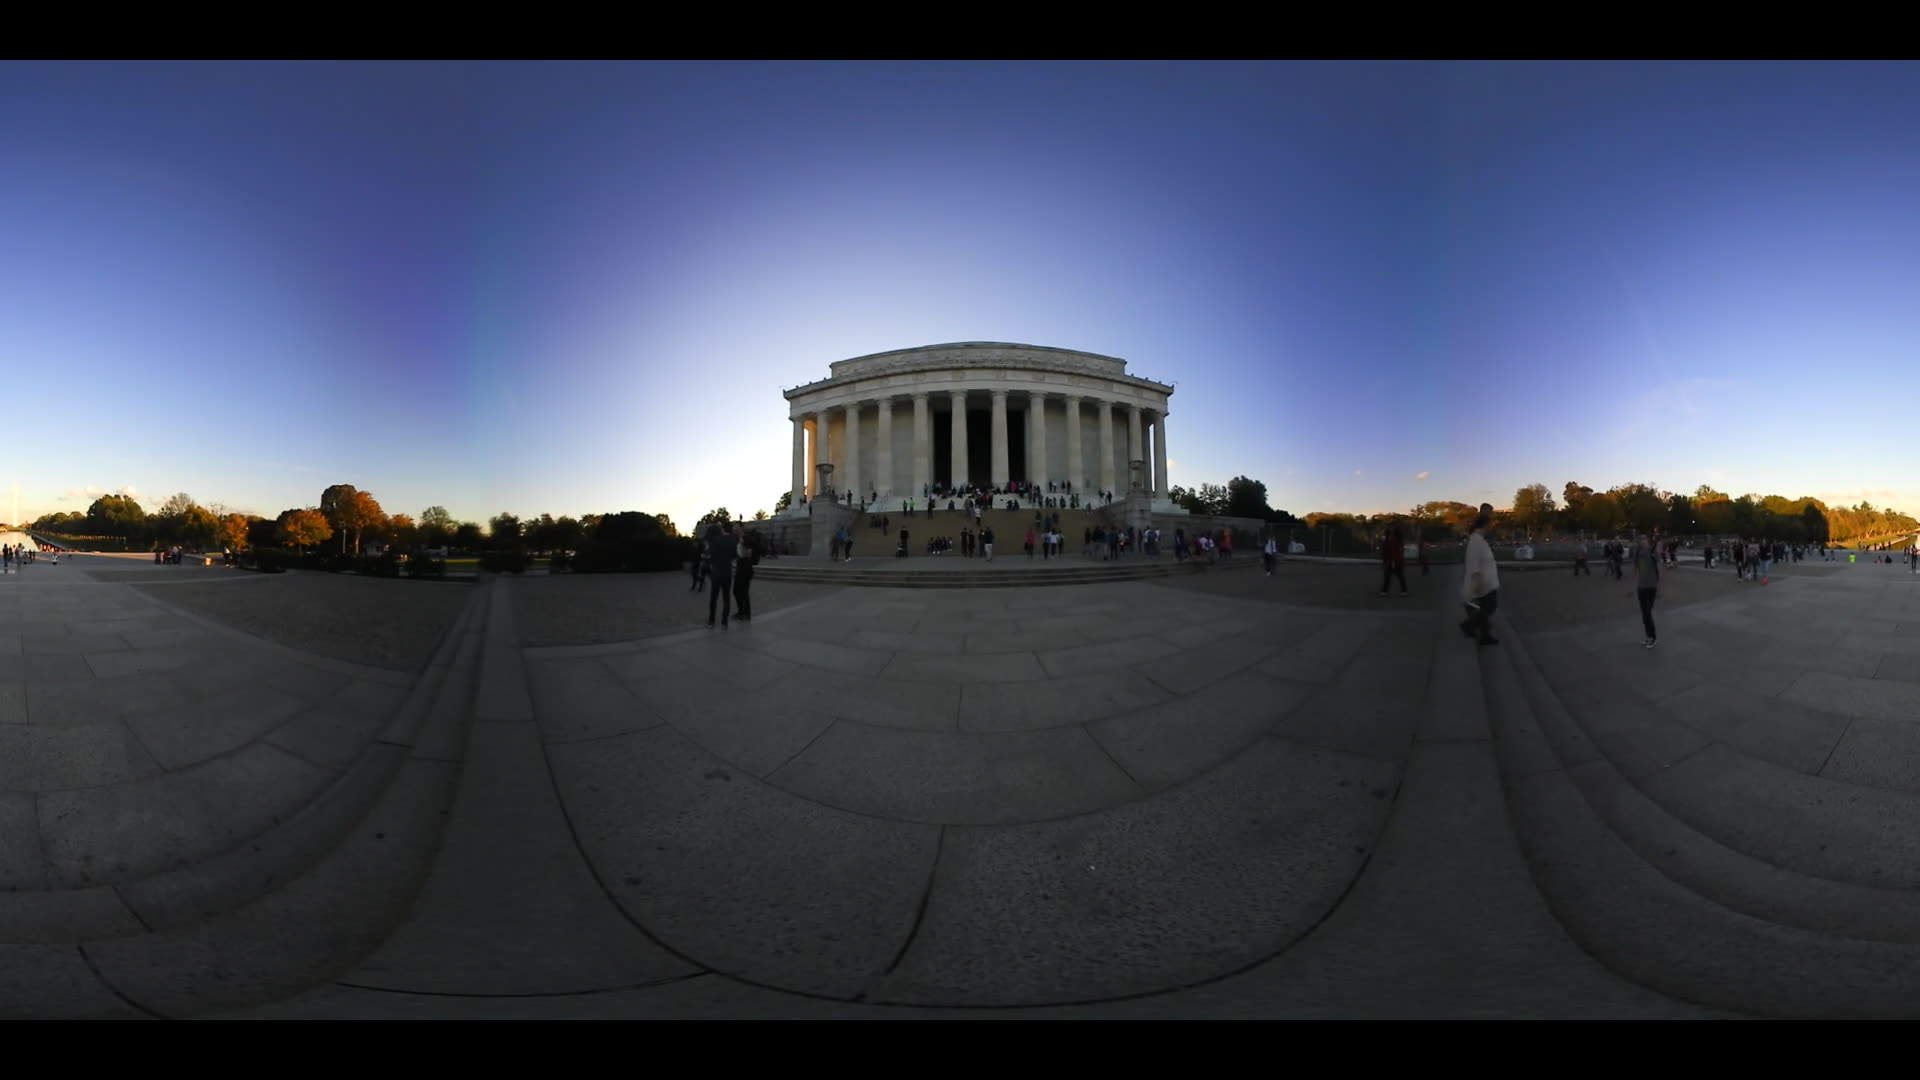 360 VR Video Lincoln Memorial And Washington Monument At Sunset National Mall